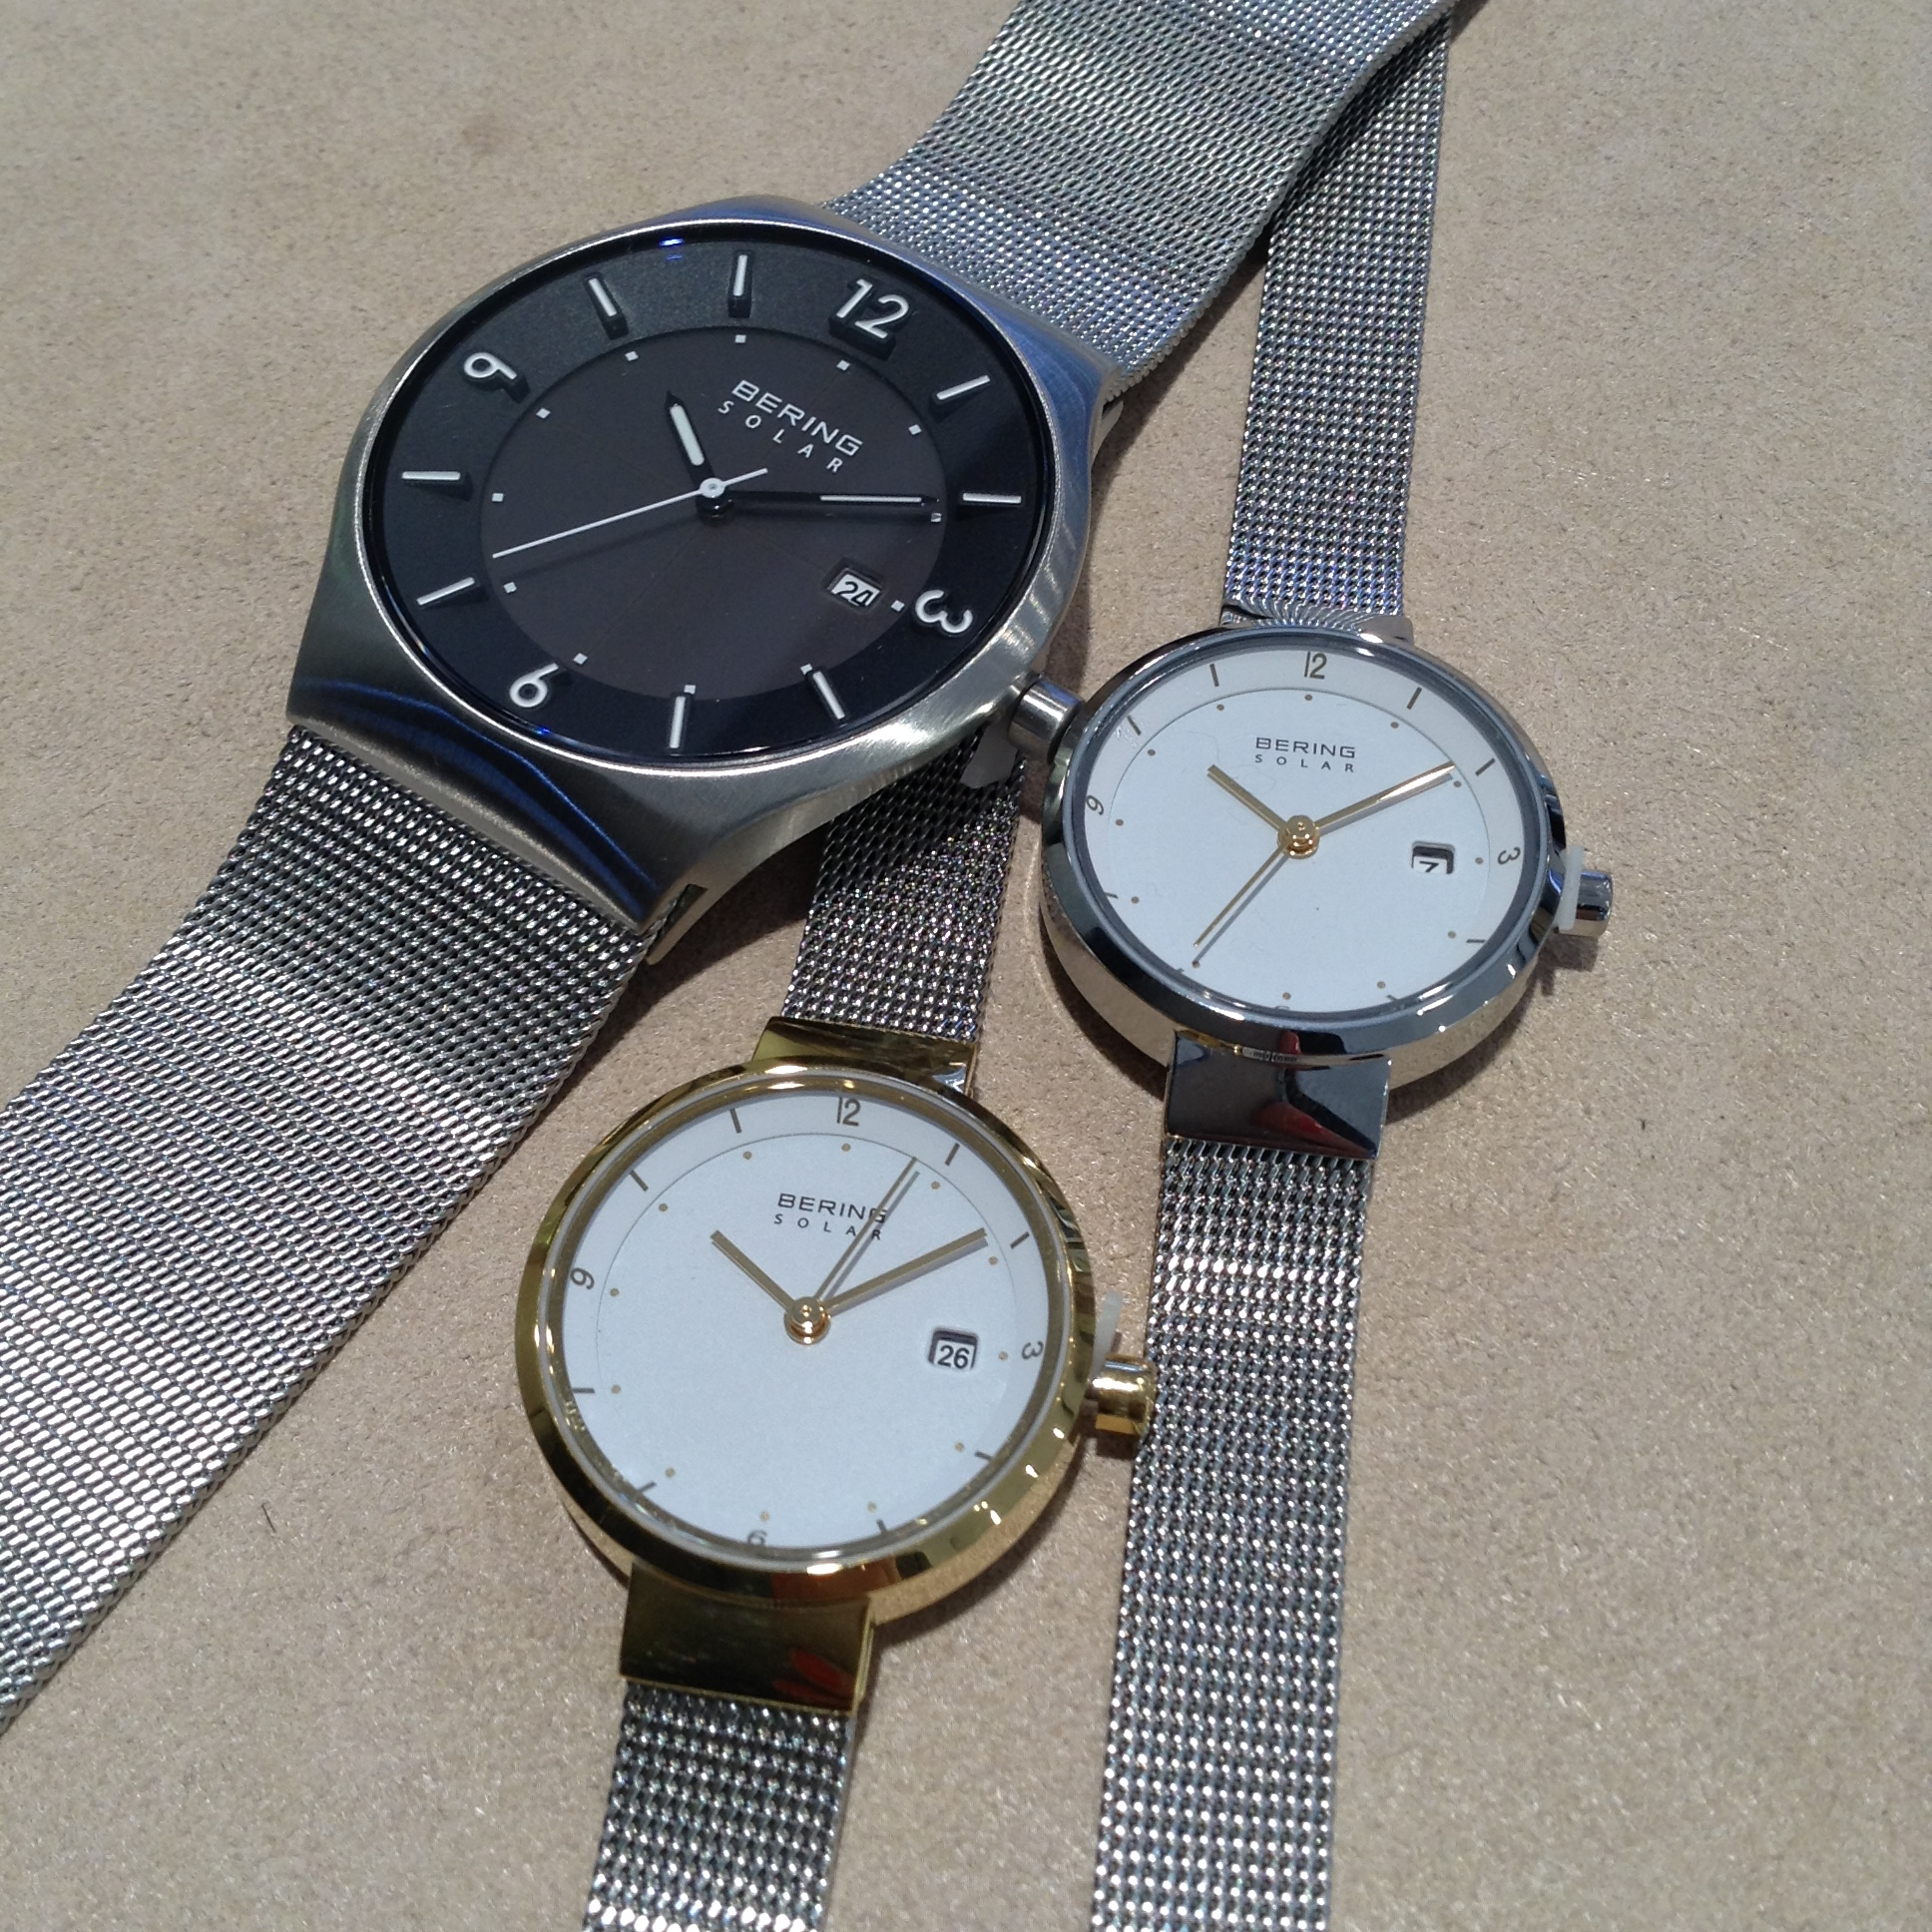 Bering Solar Powered Watches Crown Jewellery